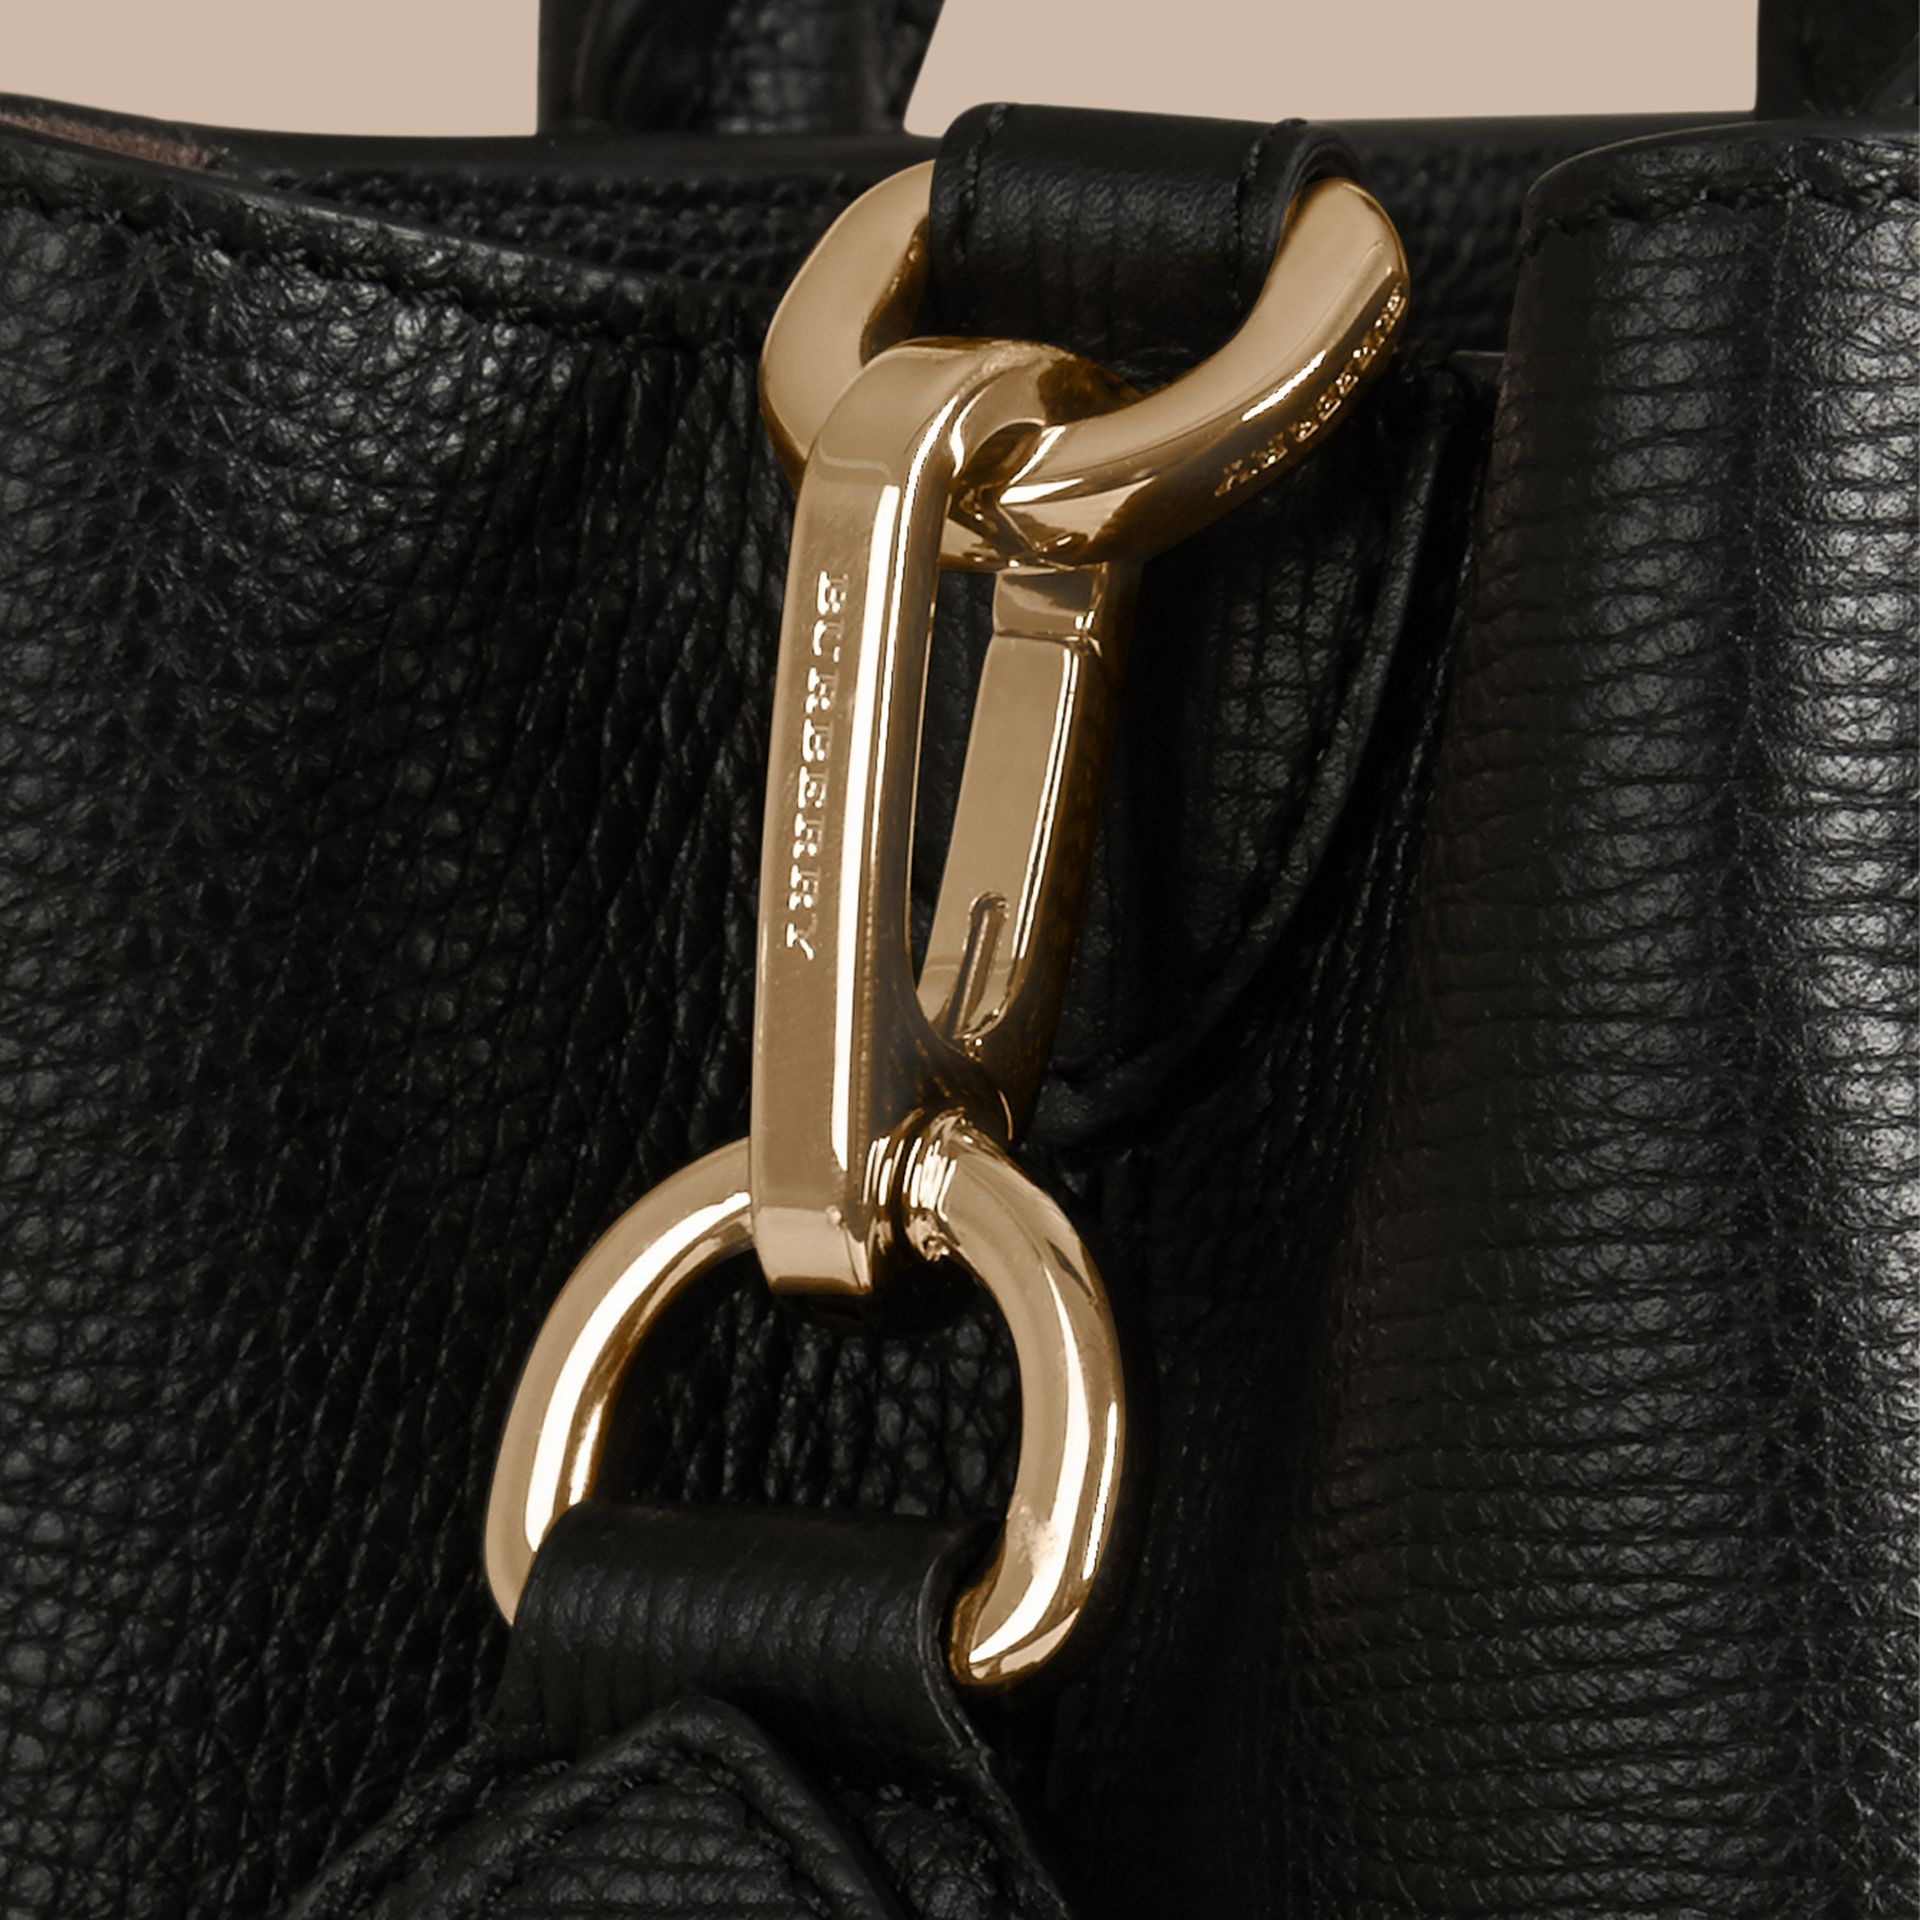 Black The Medium Saddle Bag in Grainy Bonded Leather Black - gallery image 6